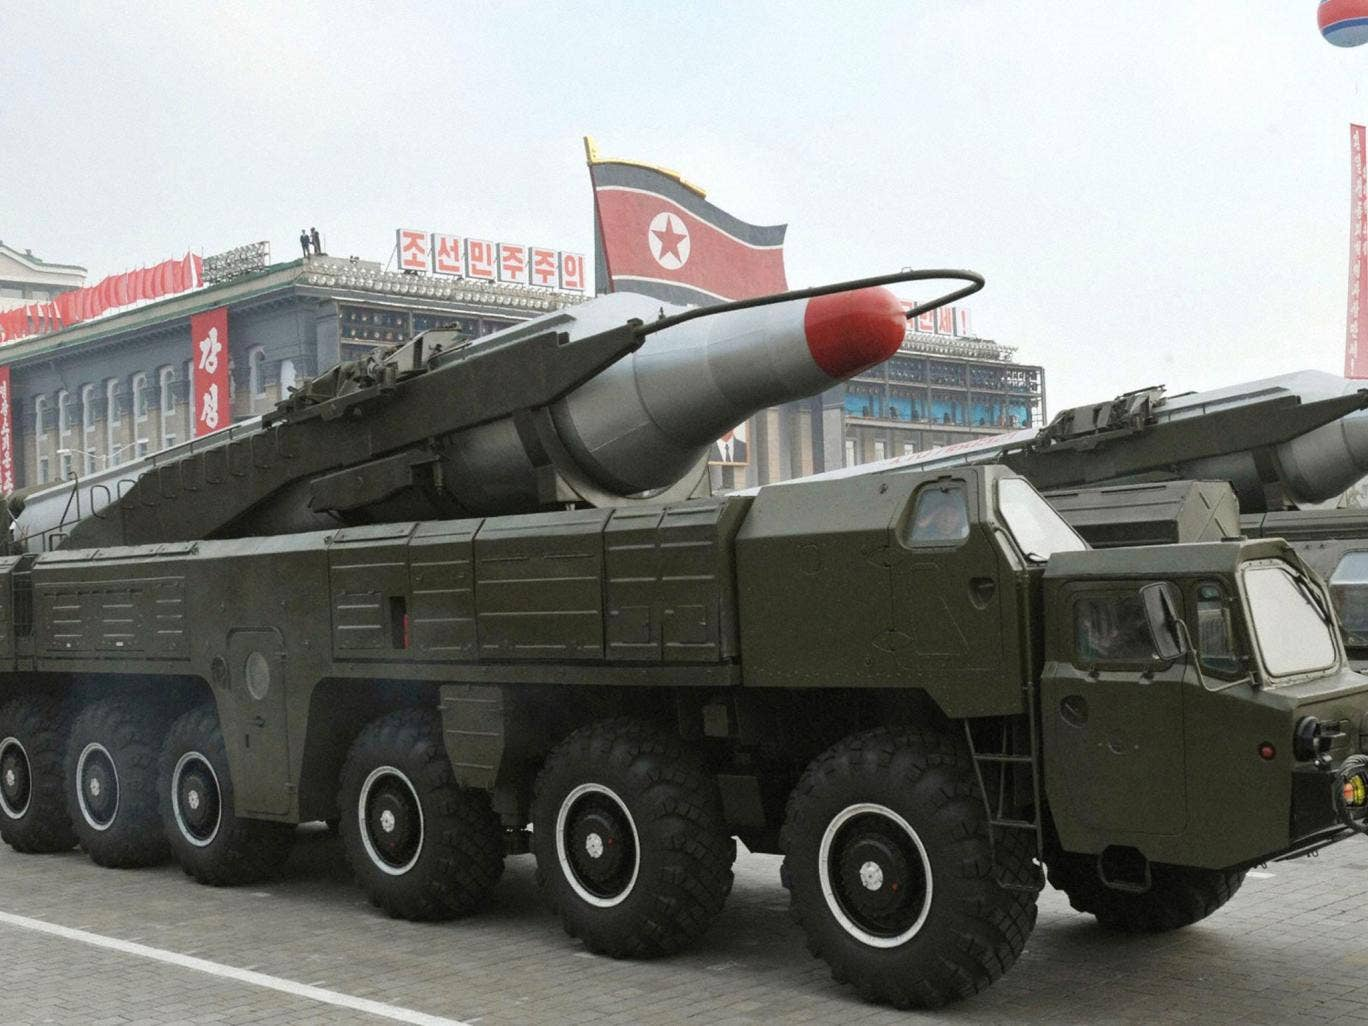 North Korea's military strength is paraded in Pyongyang